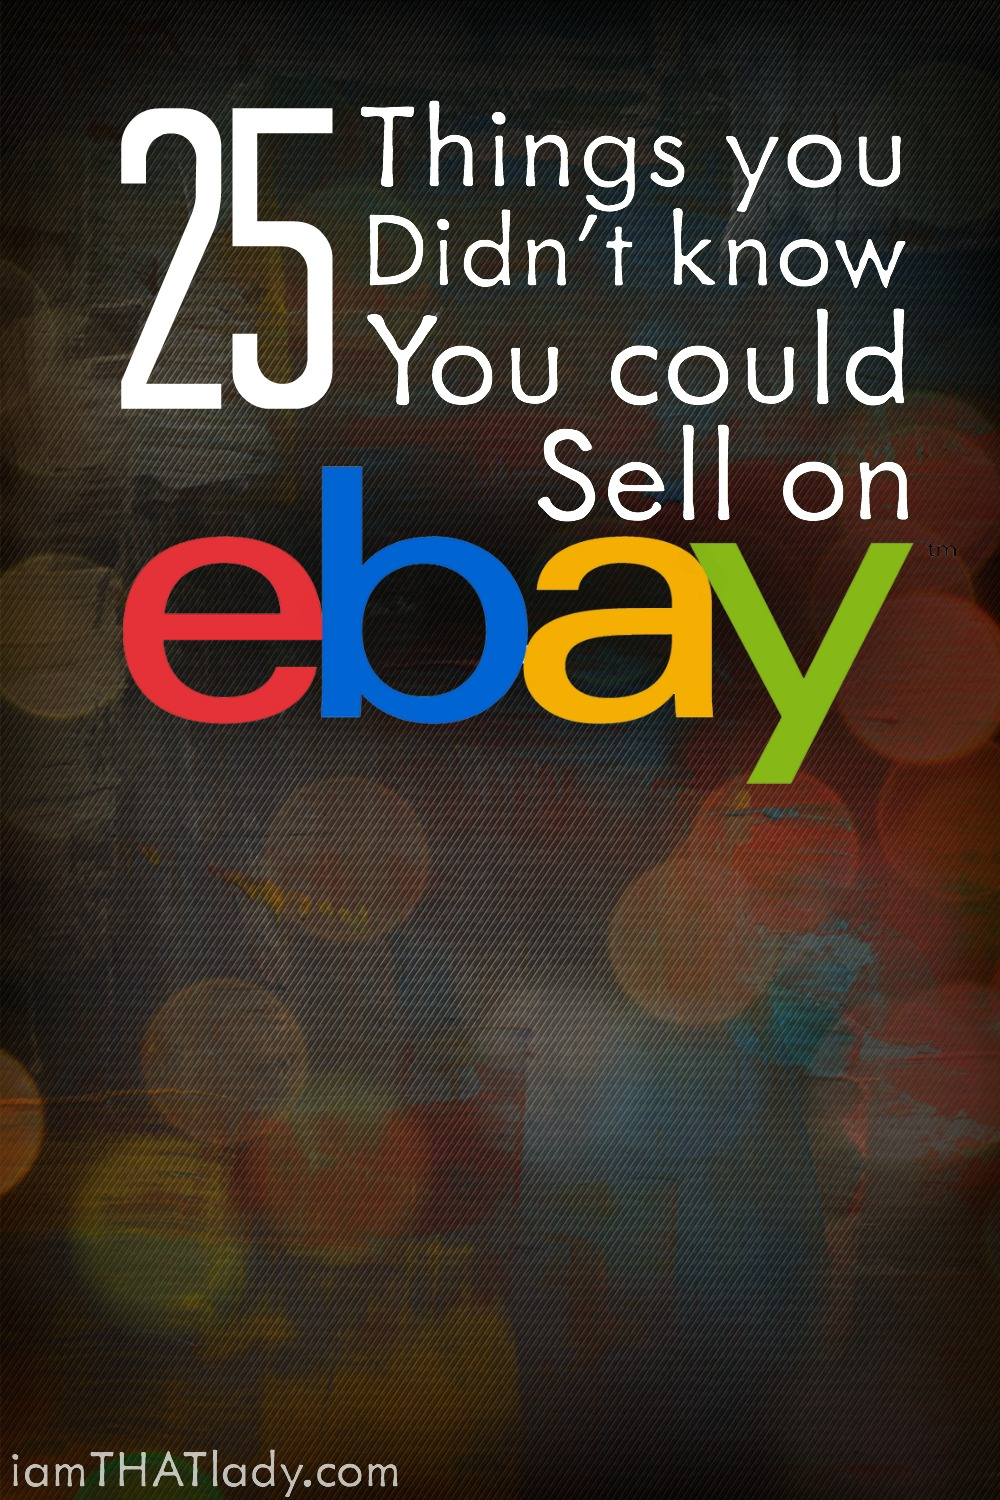 Image Result For Good Things To Sell On Ebay